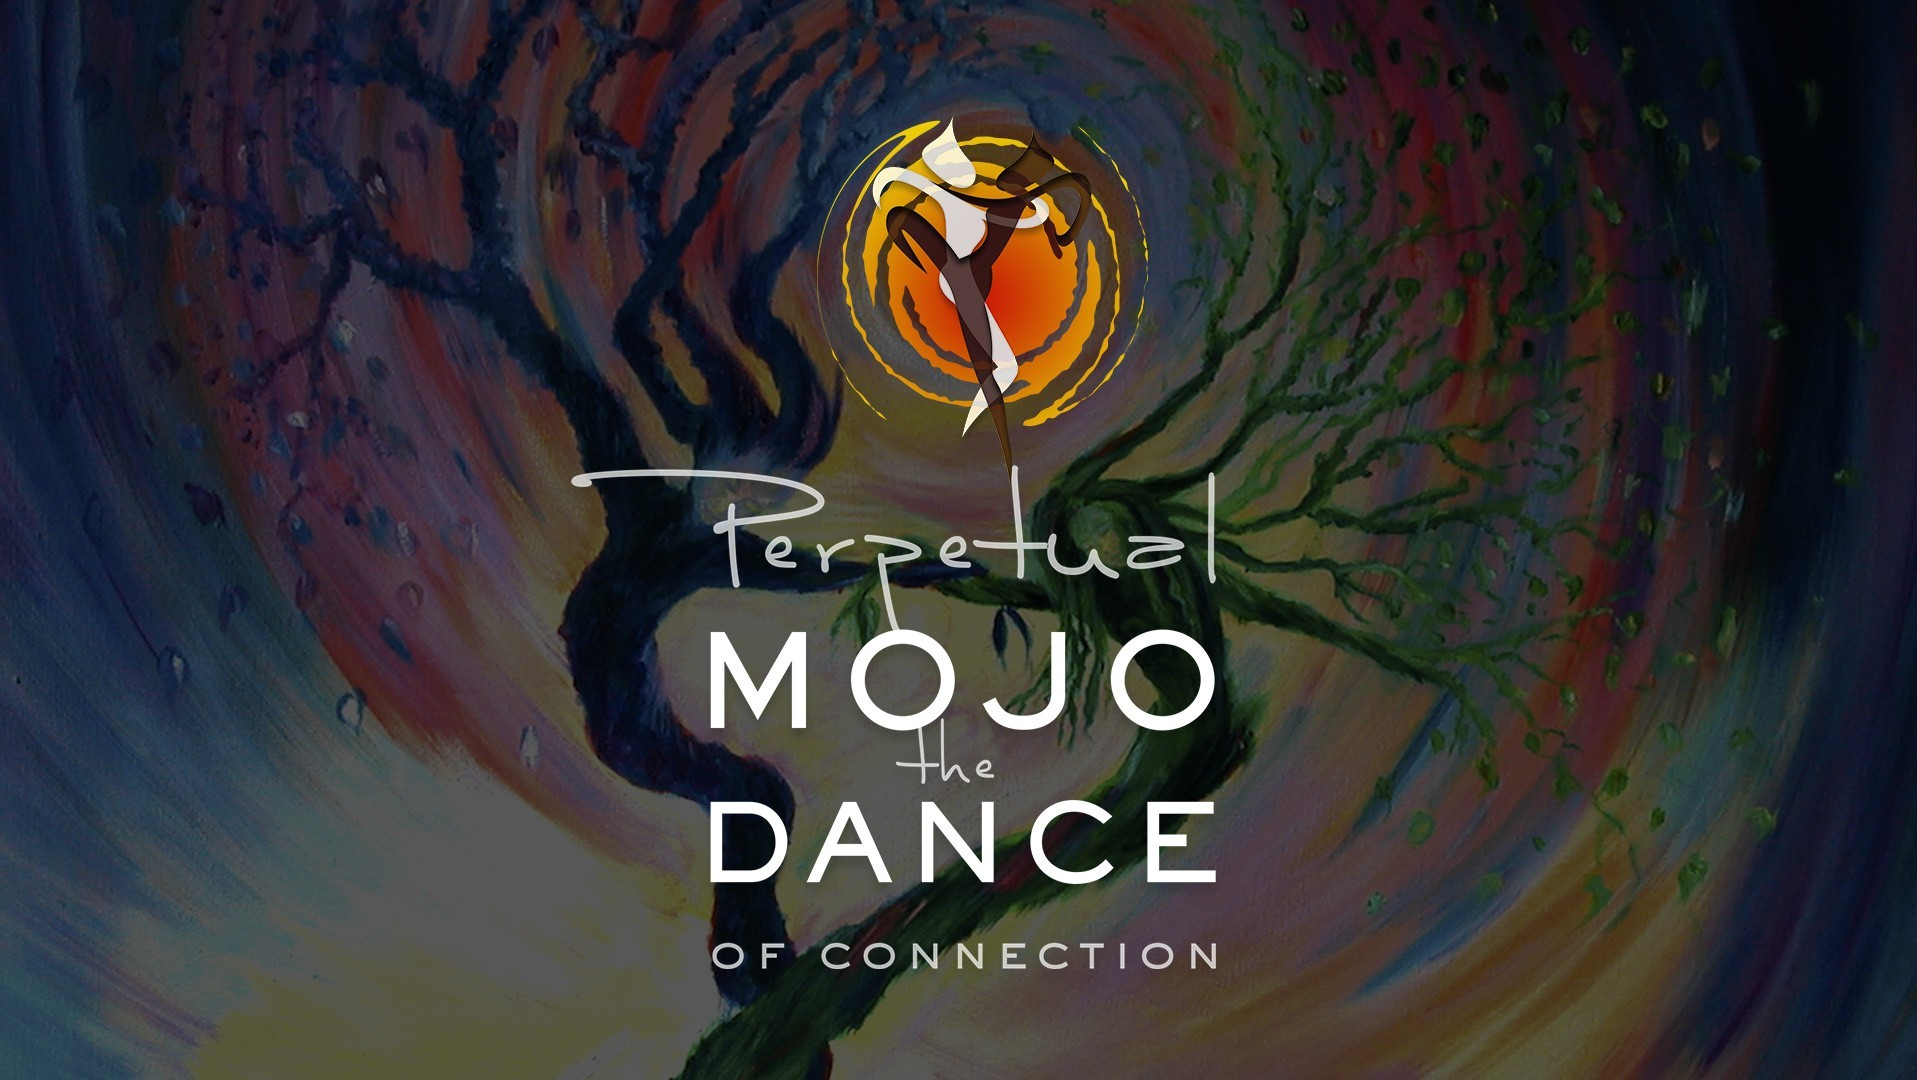 MOJO - The DANCE of Connection